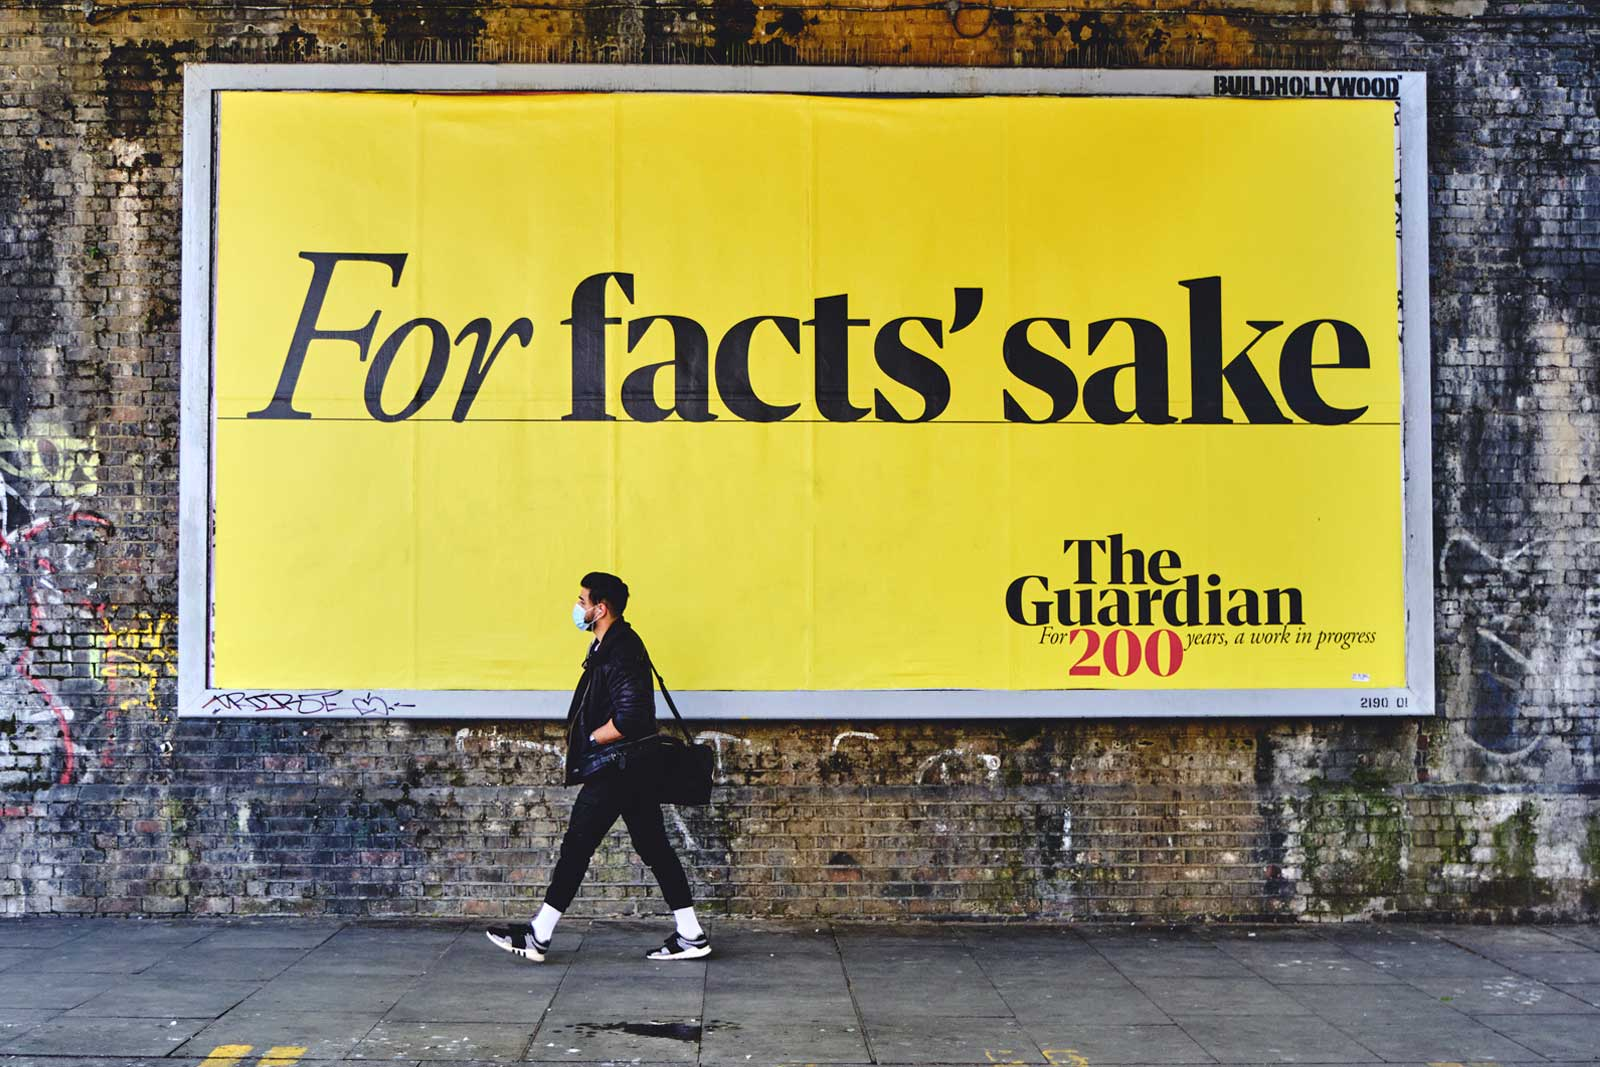 The Guardian: 200th Anniversary